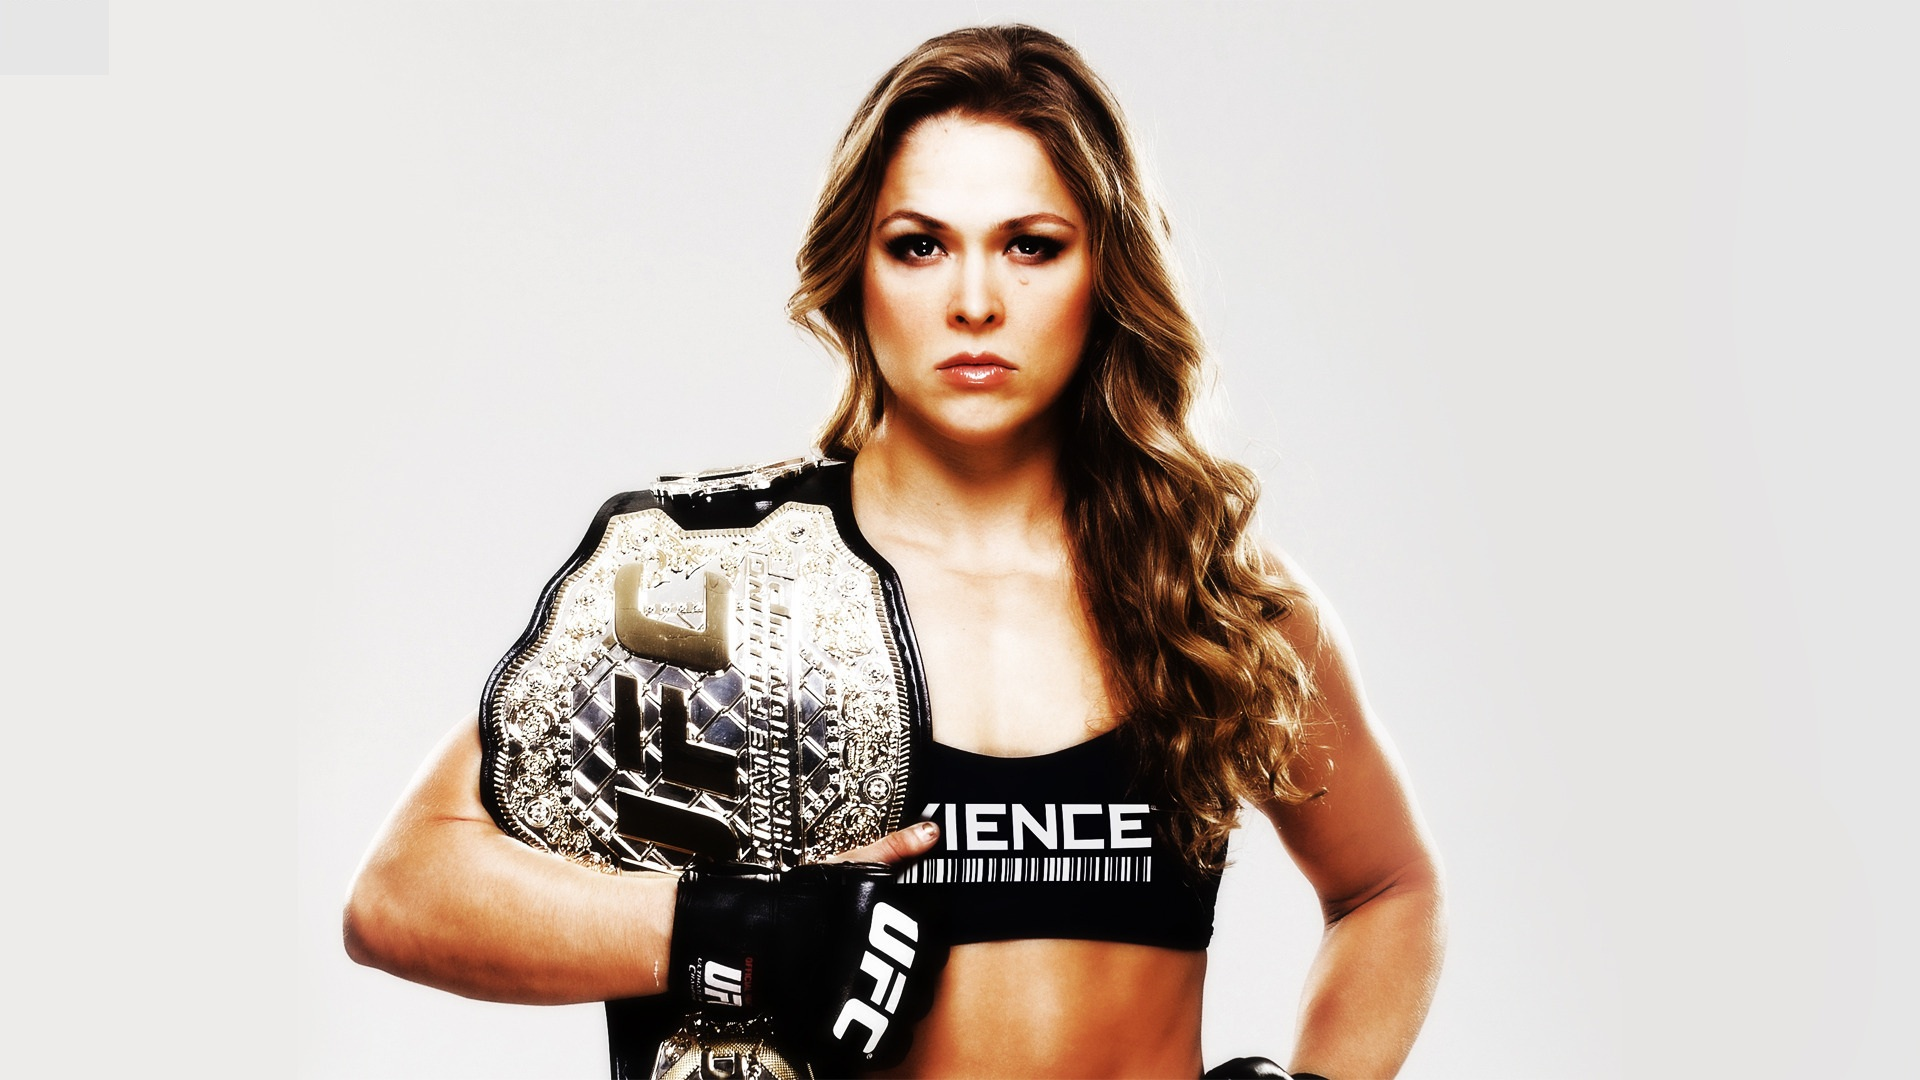 Iphone 7 Stuck On Wallpaper Ronda Rousey Wallpapers High Resolution And Quality Download